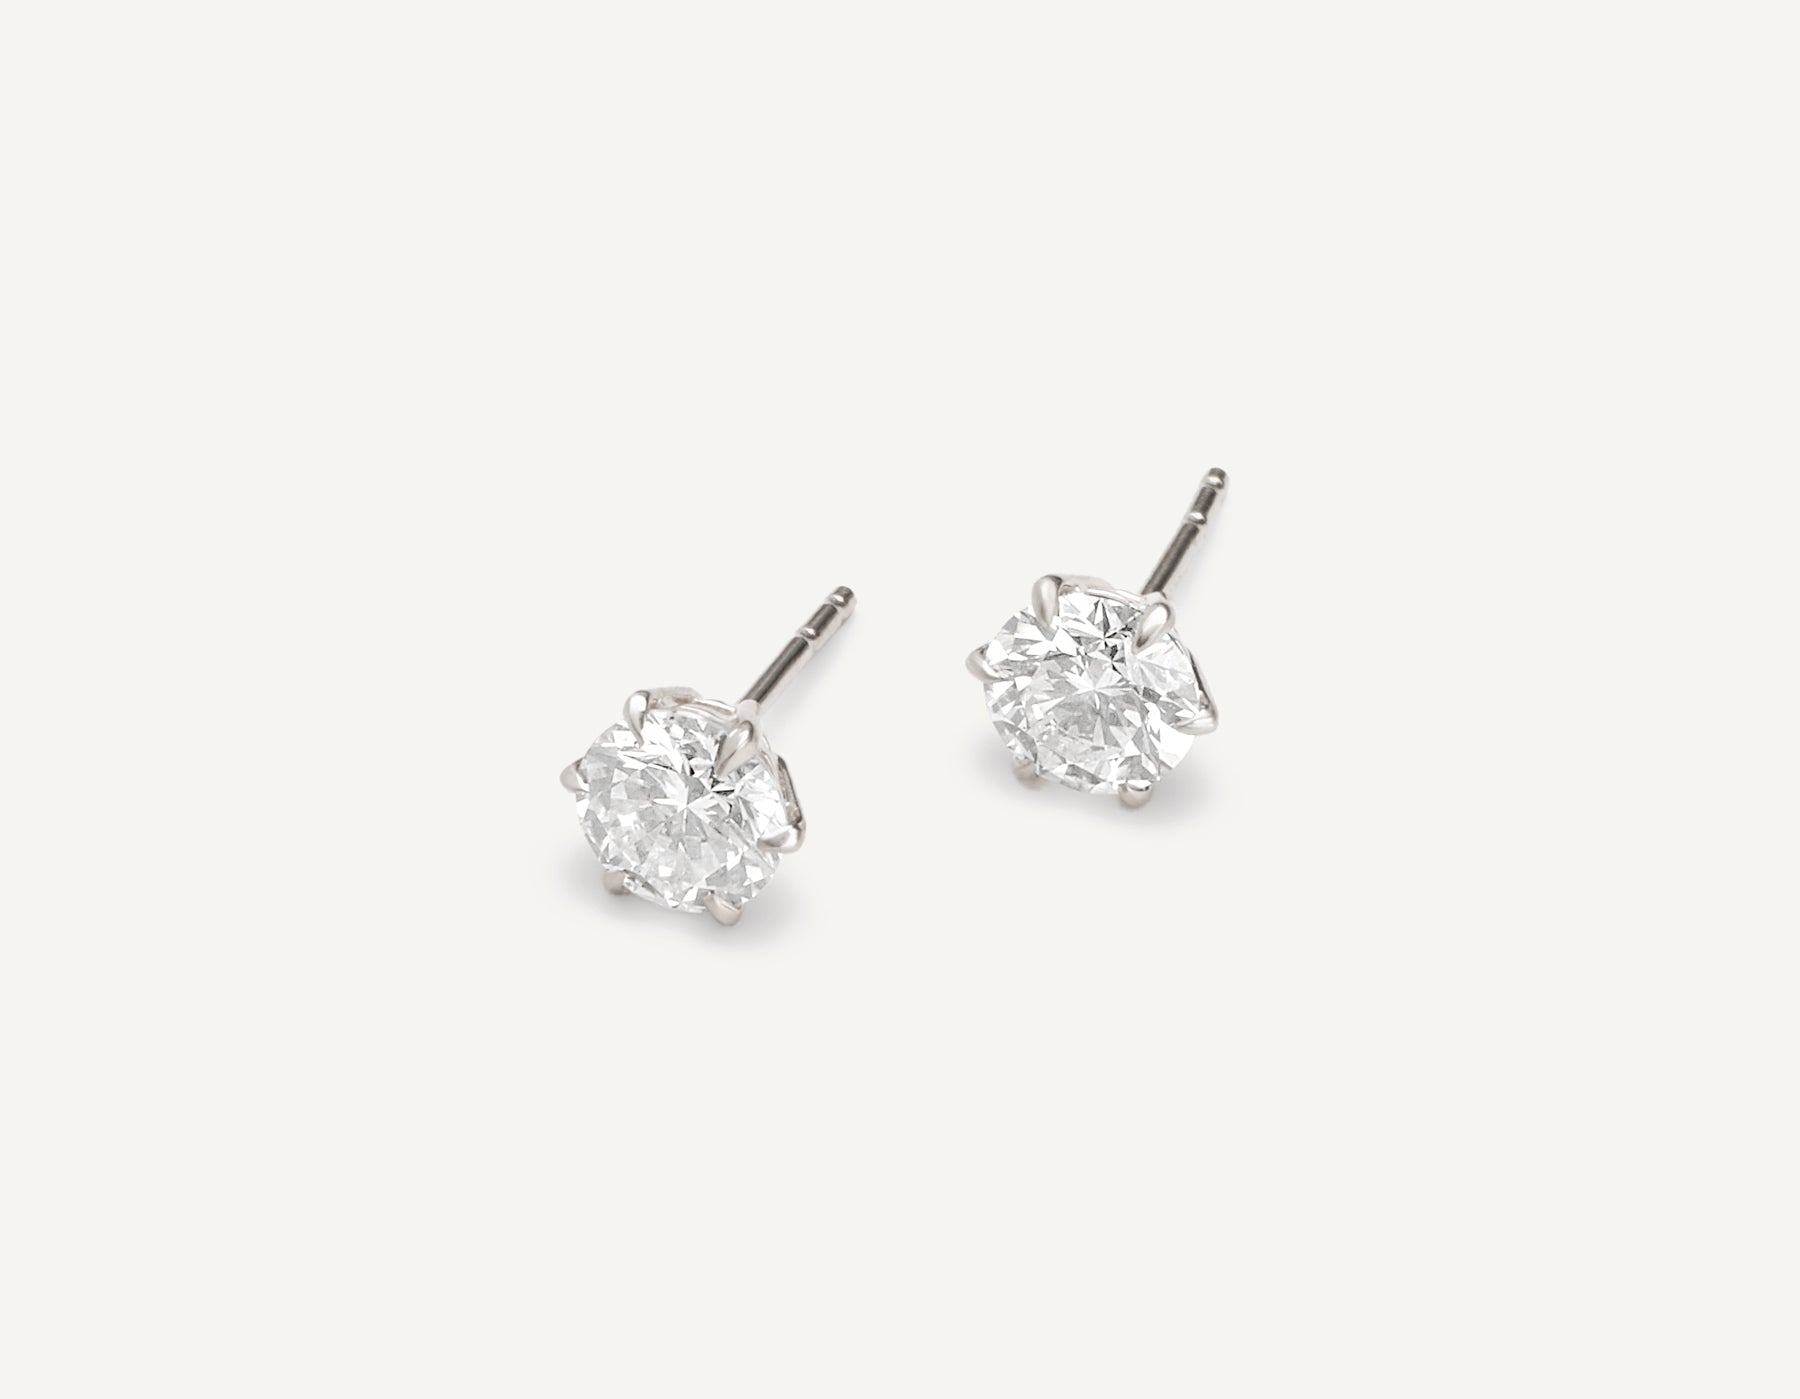 modern minimalist 18k solid gold 1.0 ct Round Brilliant Studs diamond earrings by Vrai & Oro, 18K White Gold